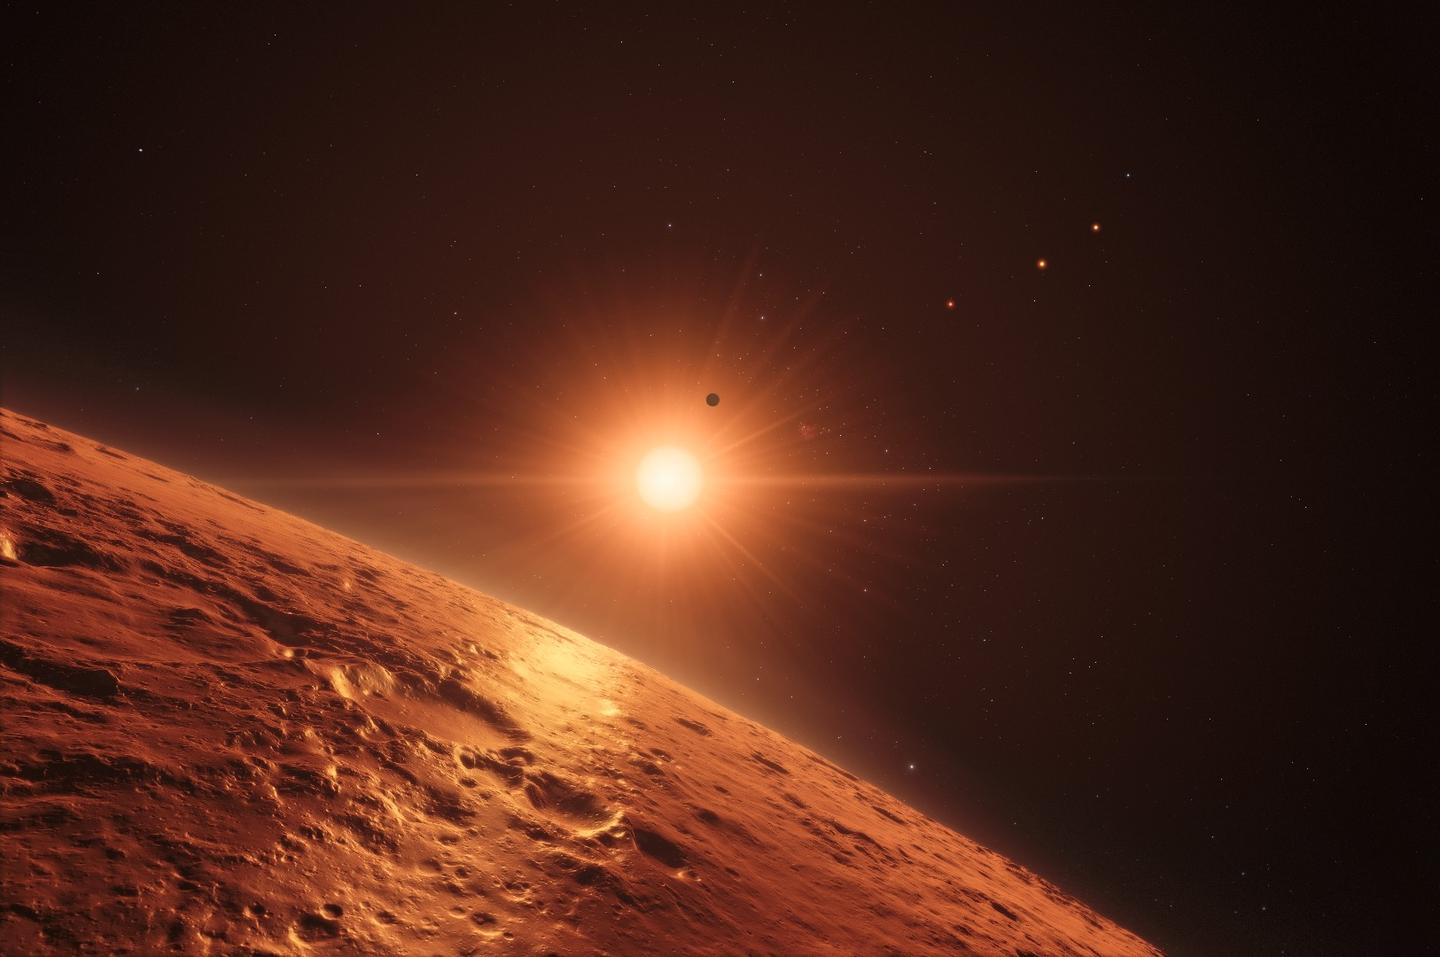 This artist's impression shows the view just above the surface of one of the middle planets in the TRAPPIST-1 system, with the glare of the host star illuminating the rocky surface